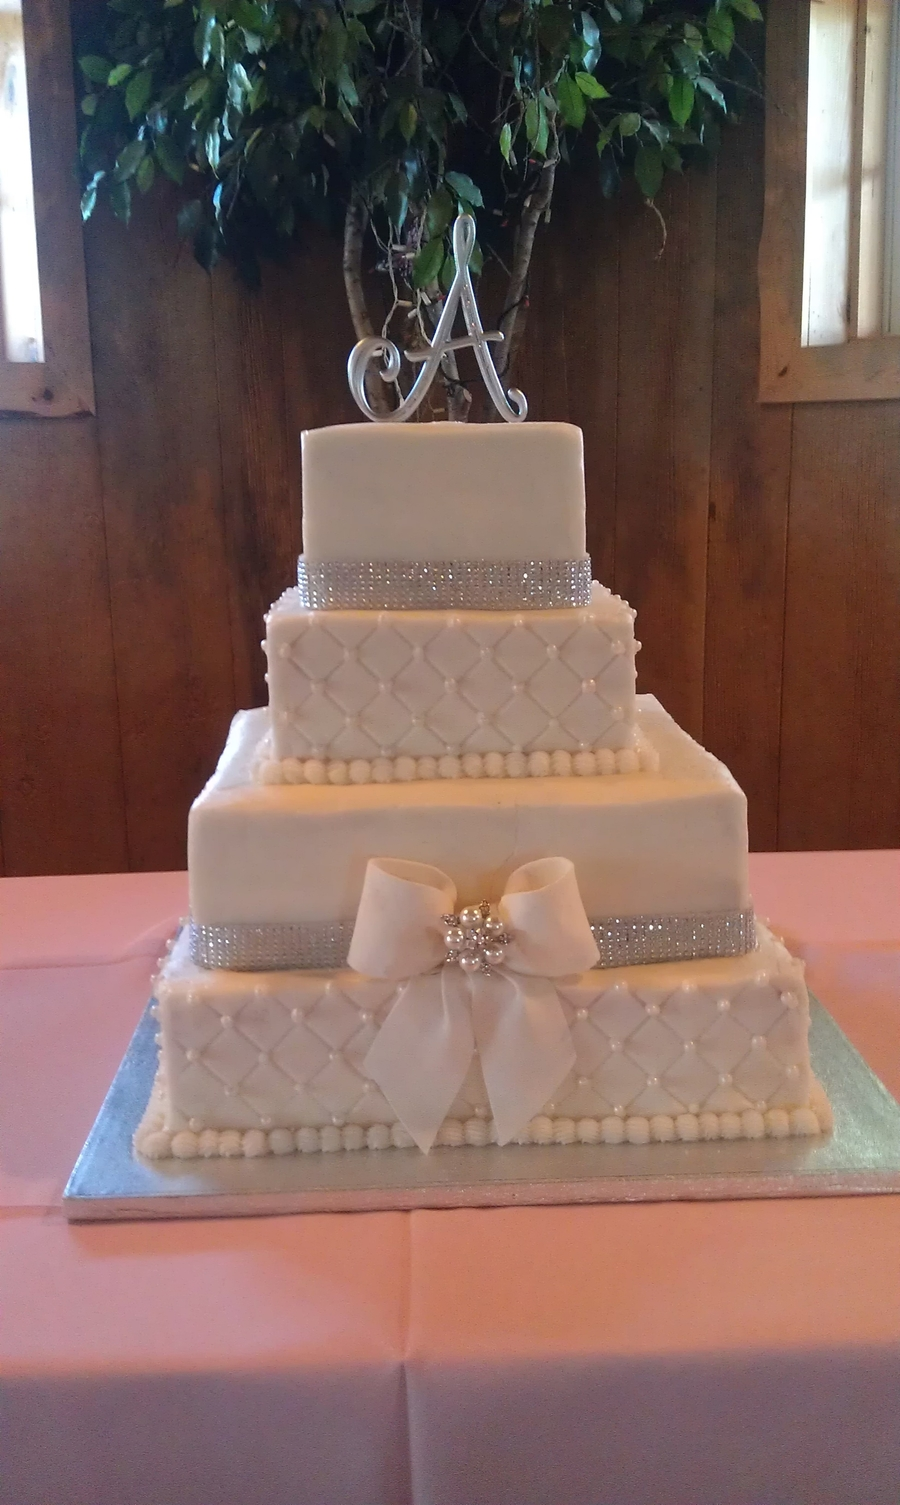 4 Tier Bling With Bow Cakecentral Com